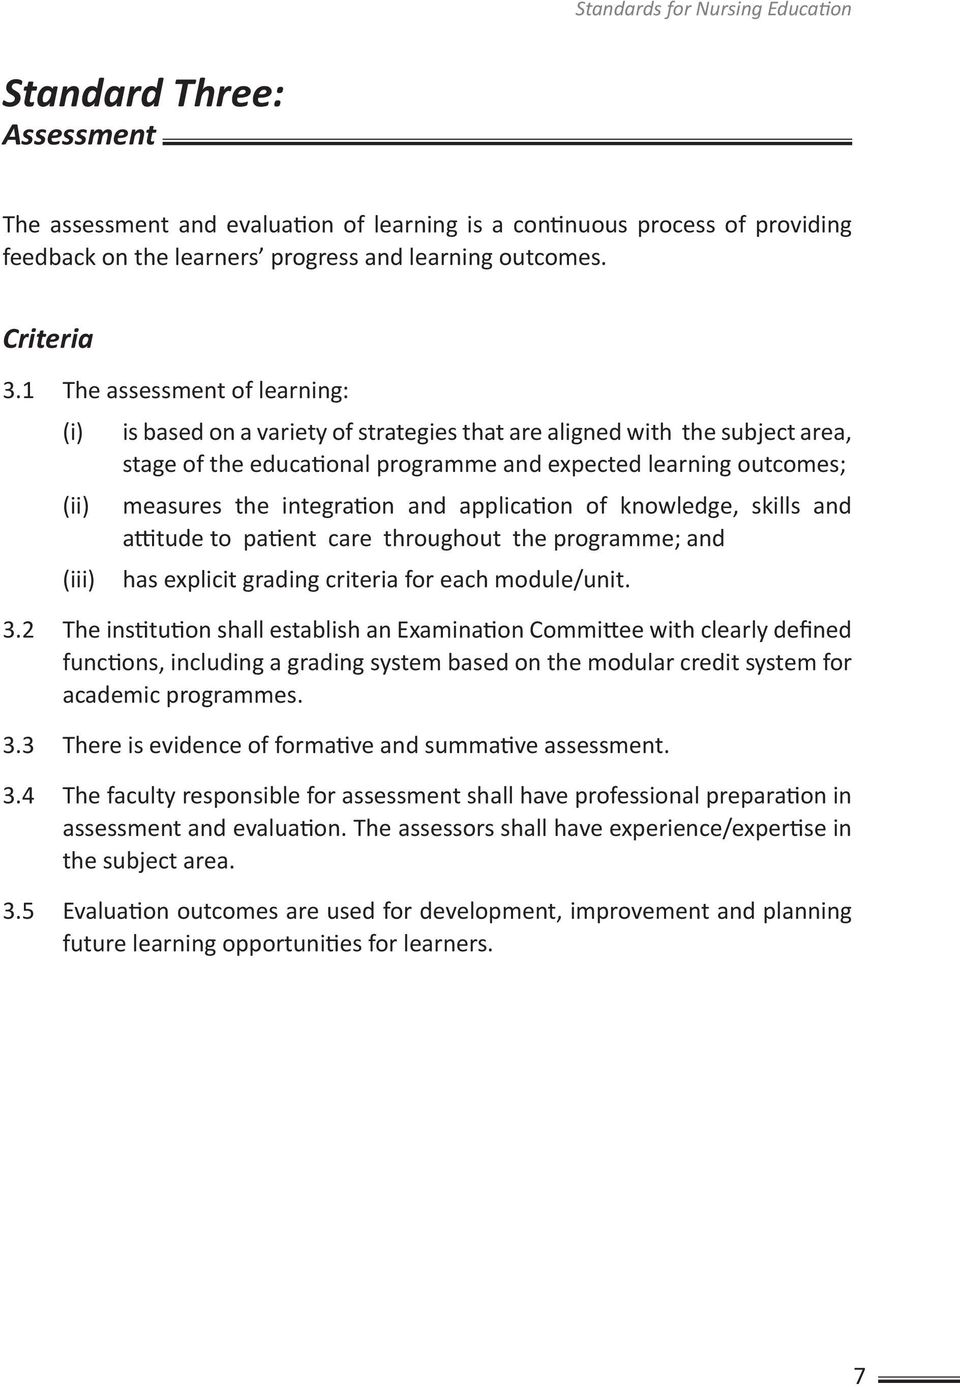 1 The assessment of learning: (i) is based on a variety of strategies that are aligned with the subject area, stage of the educational programme and expected learning outcomes; (ii) measures the